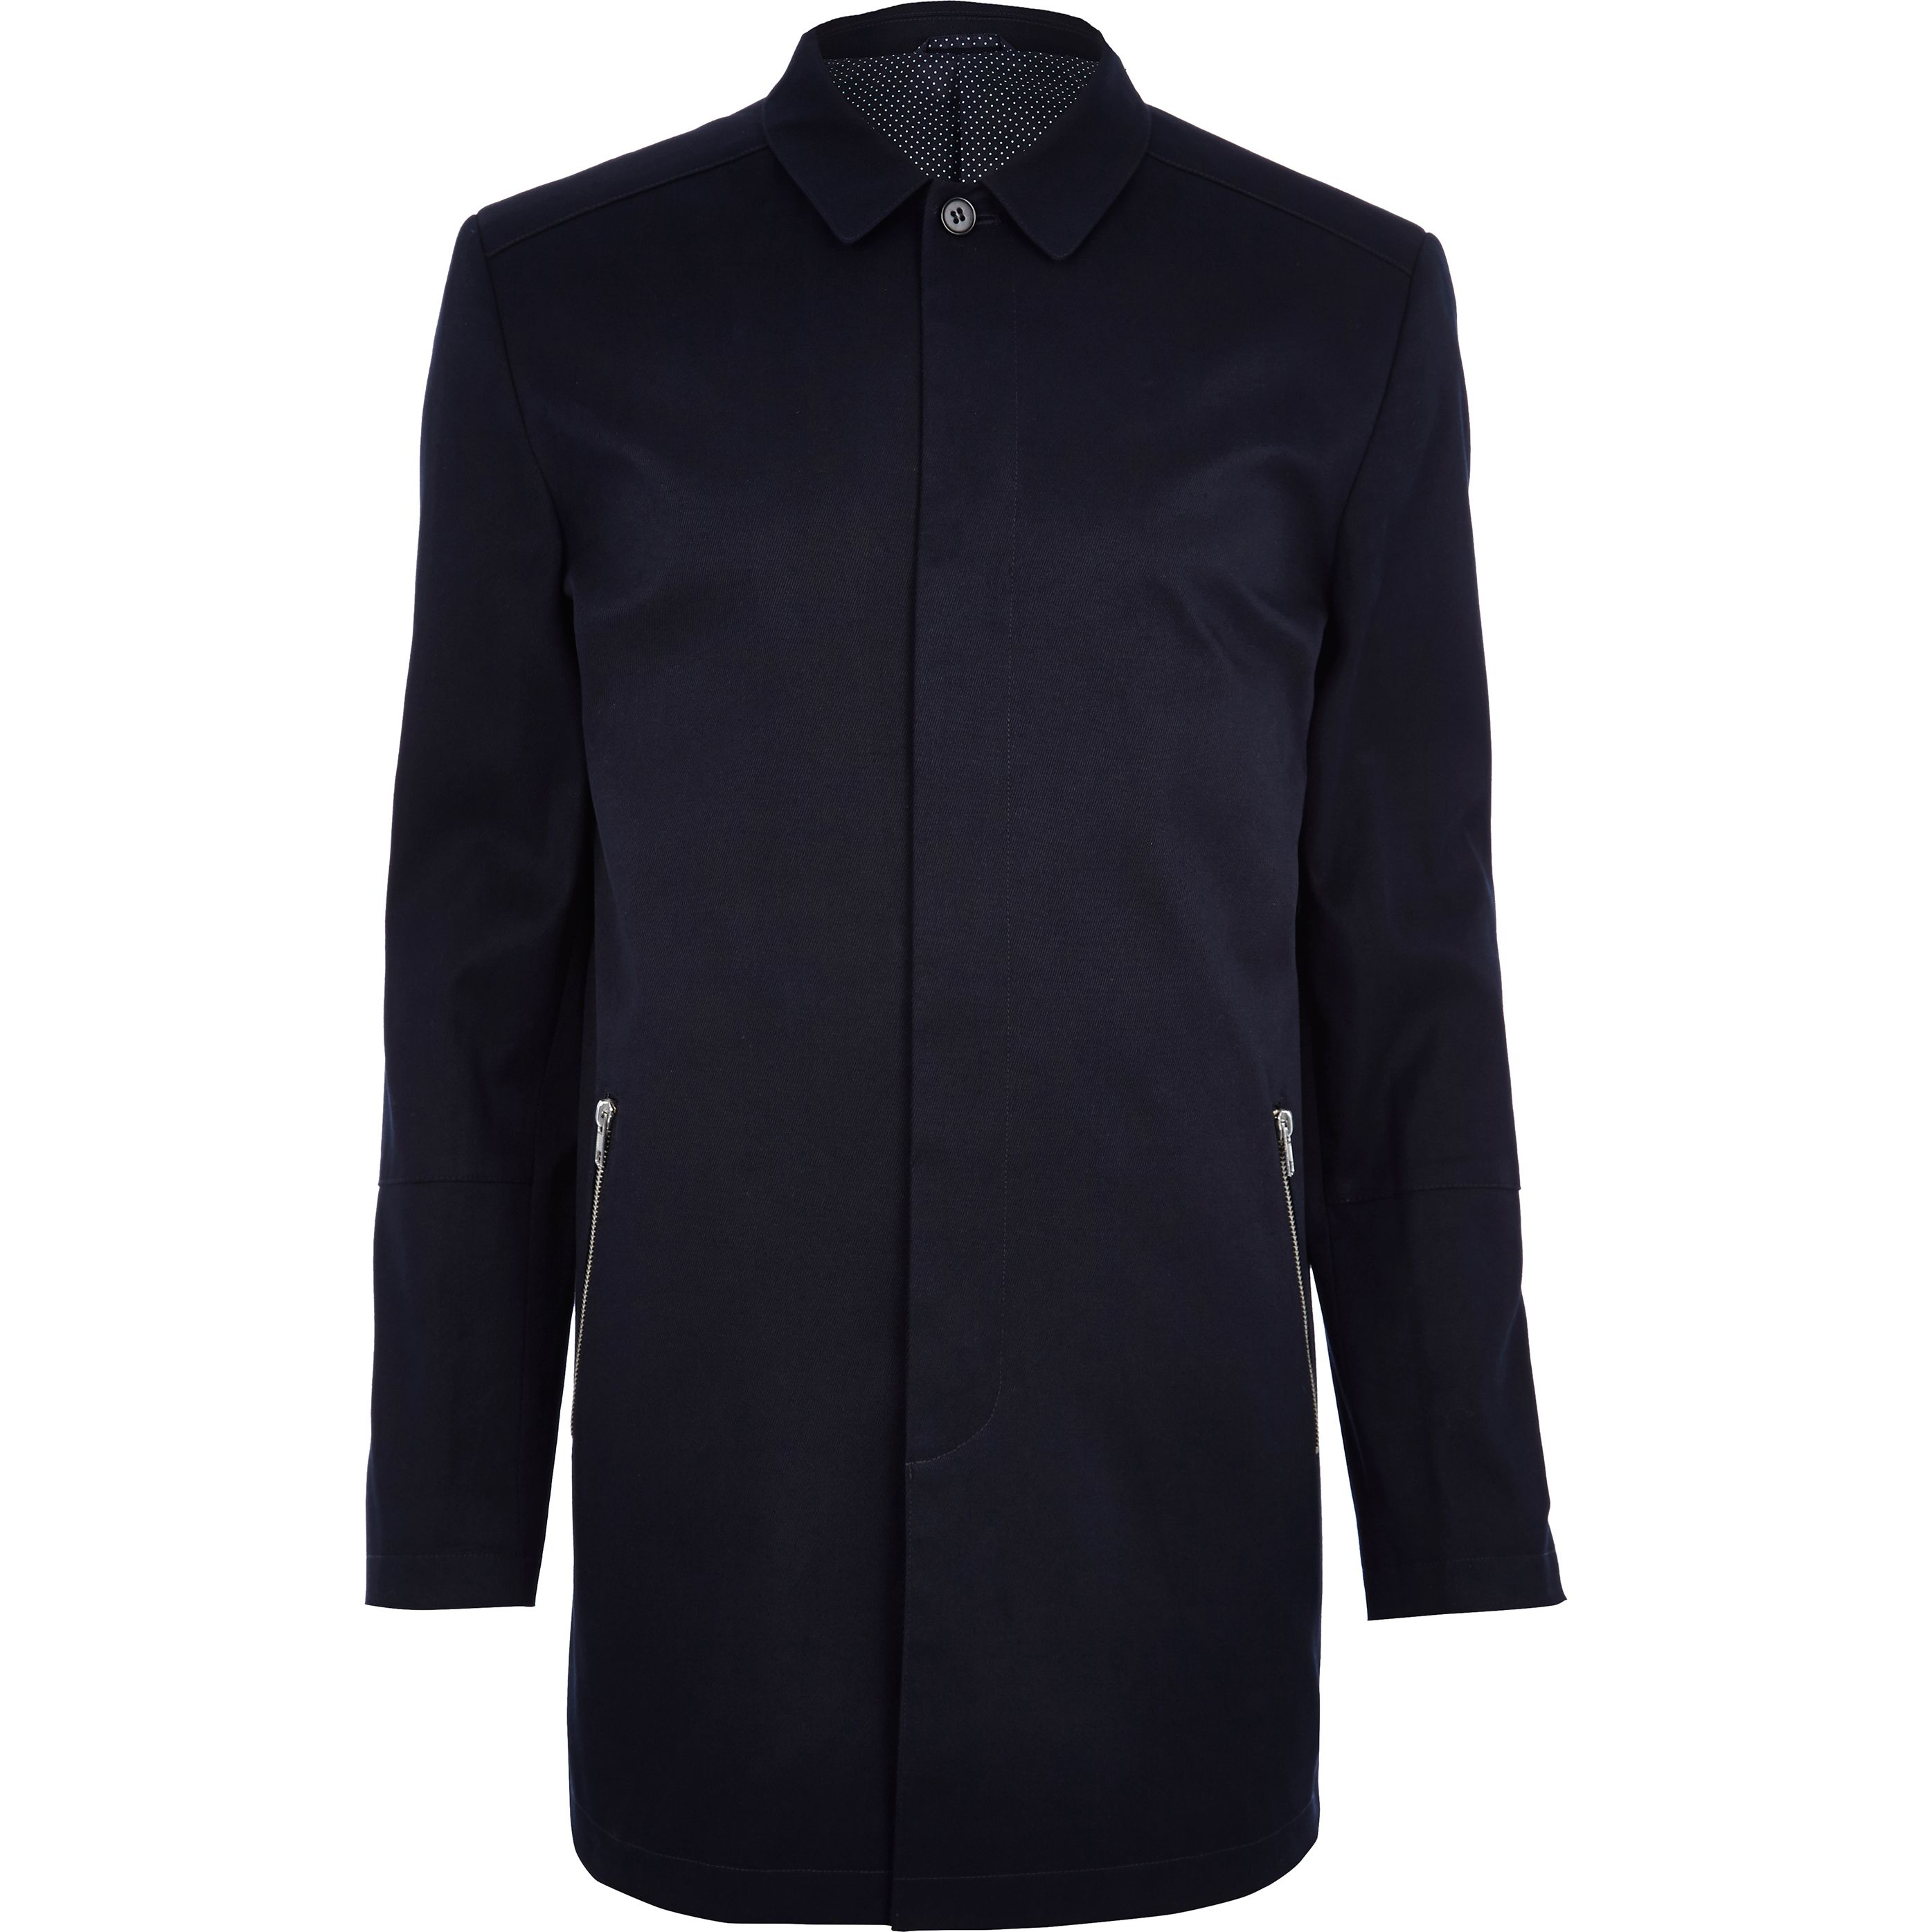 Navy Smart Mac €105 at River Island – Minimal Magic